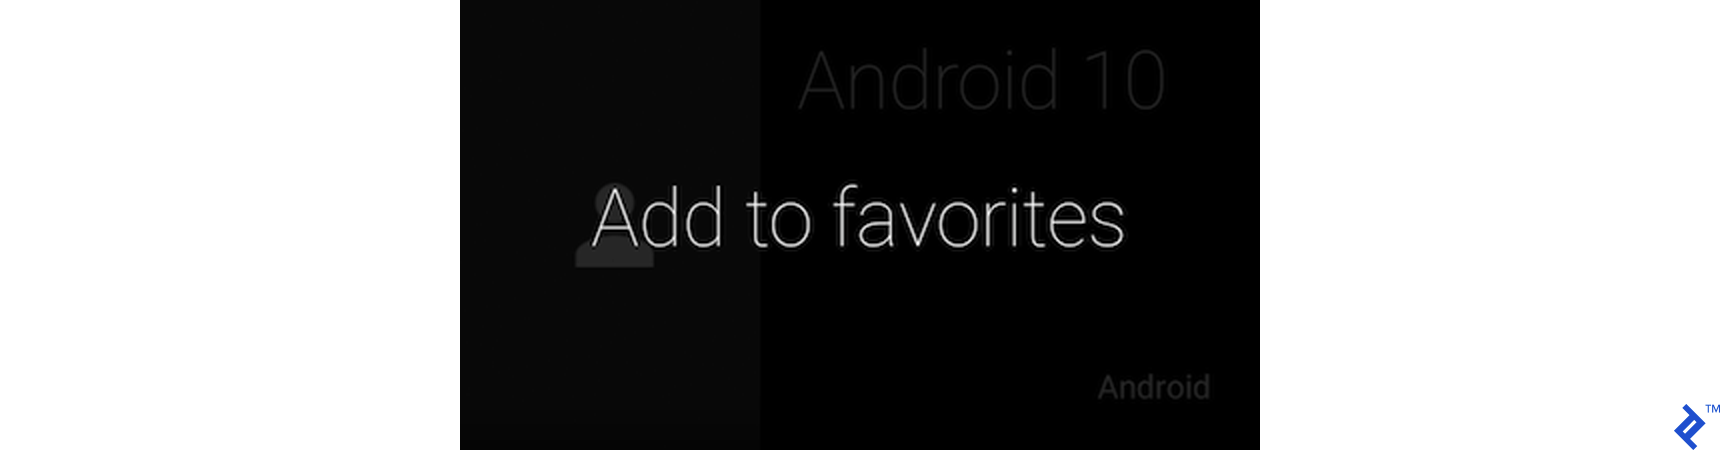 "Tapping the Google Glass screen brings up ""Add to favorites."""